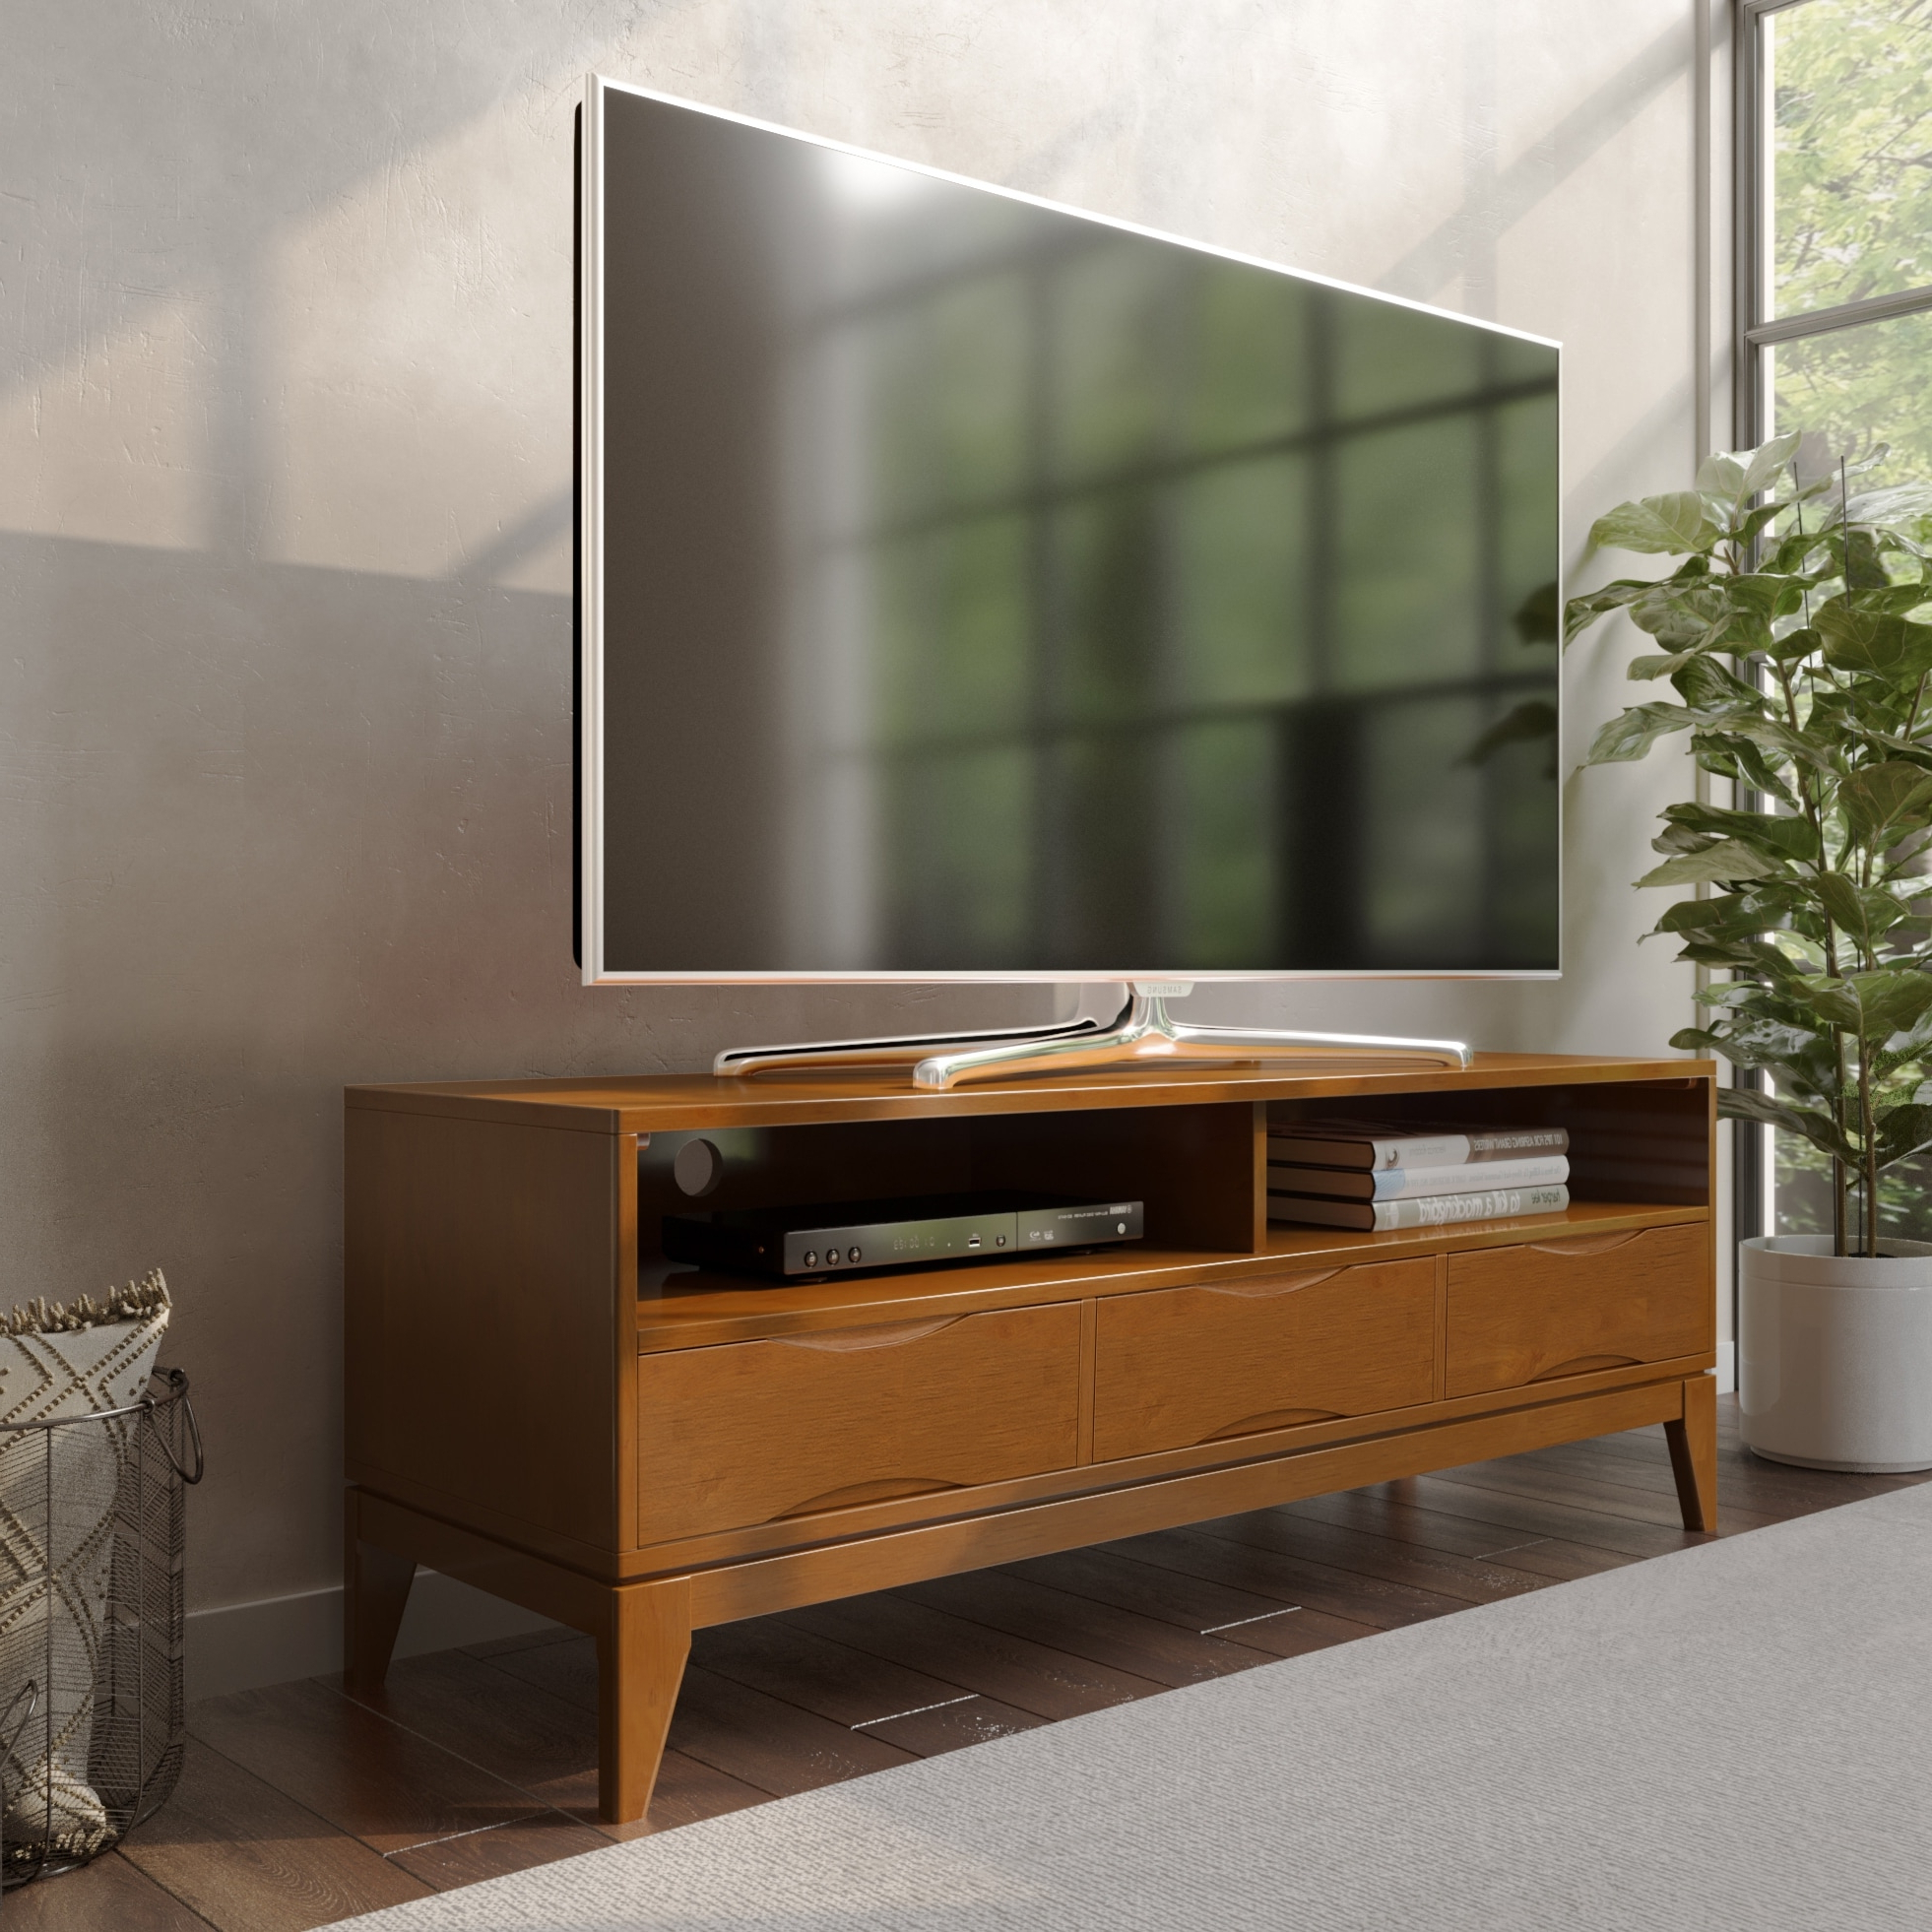 Wyndenhall Pearson Solid Hardwood 60 Inch Wide Mid Century With Regard To Orsen Wide Tv Stands (View 3 of 20)